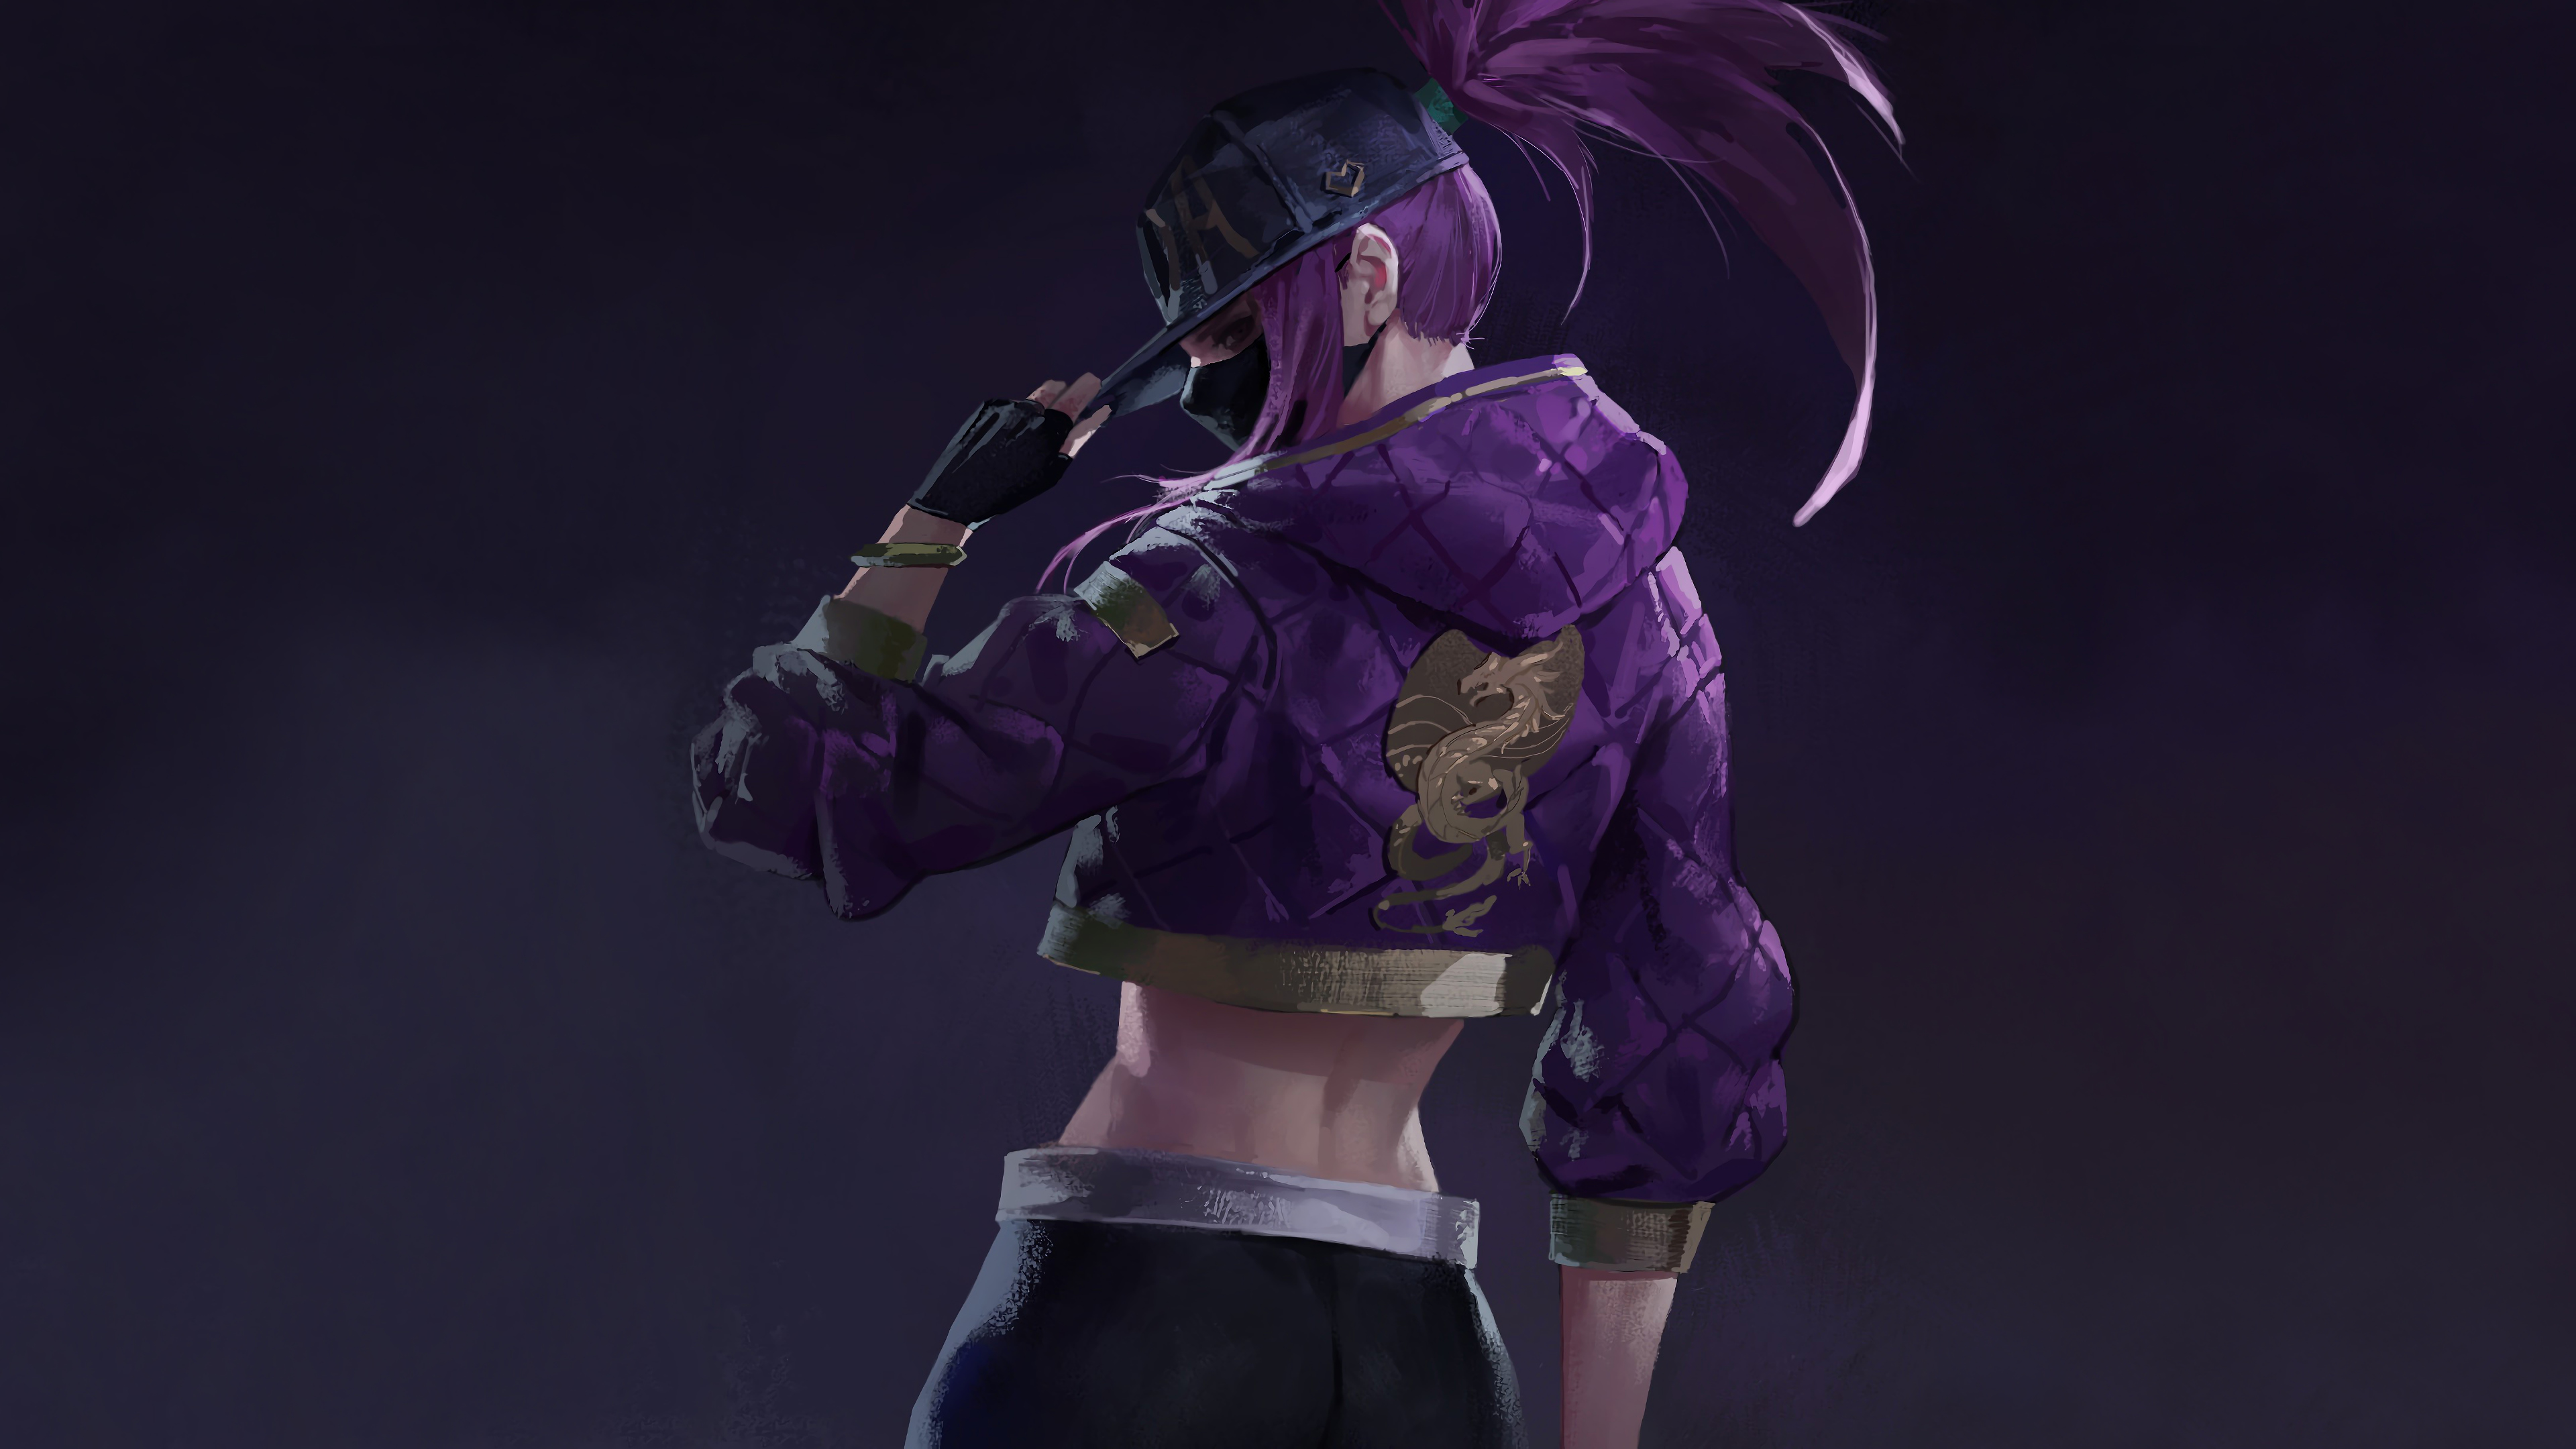 Kda Akali Lol, HD Games, 4k Wallpapers, Image, Backgrounds, Photos